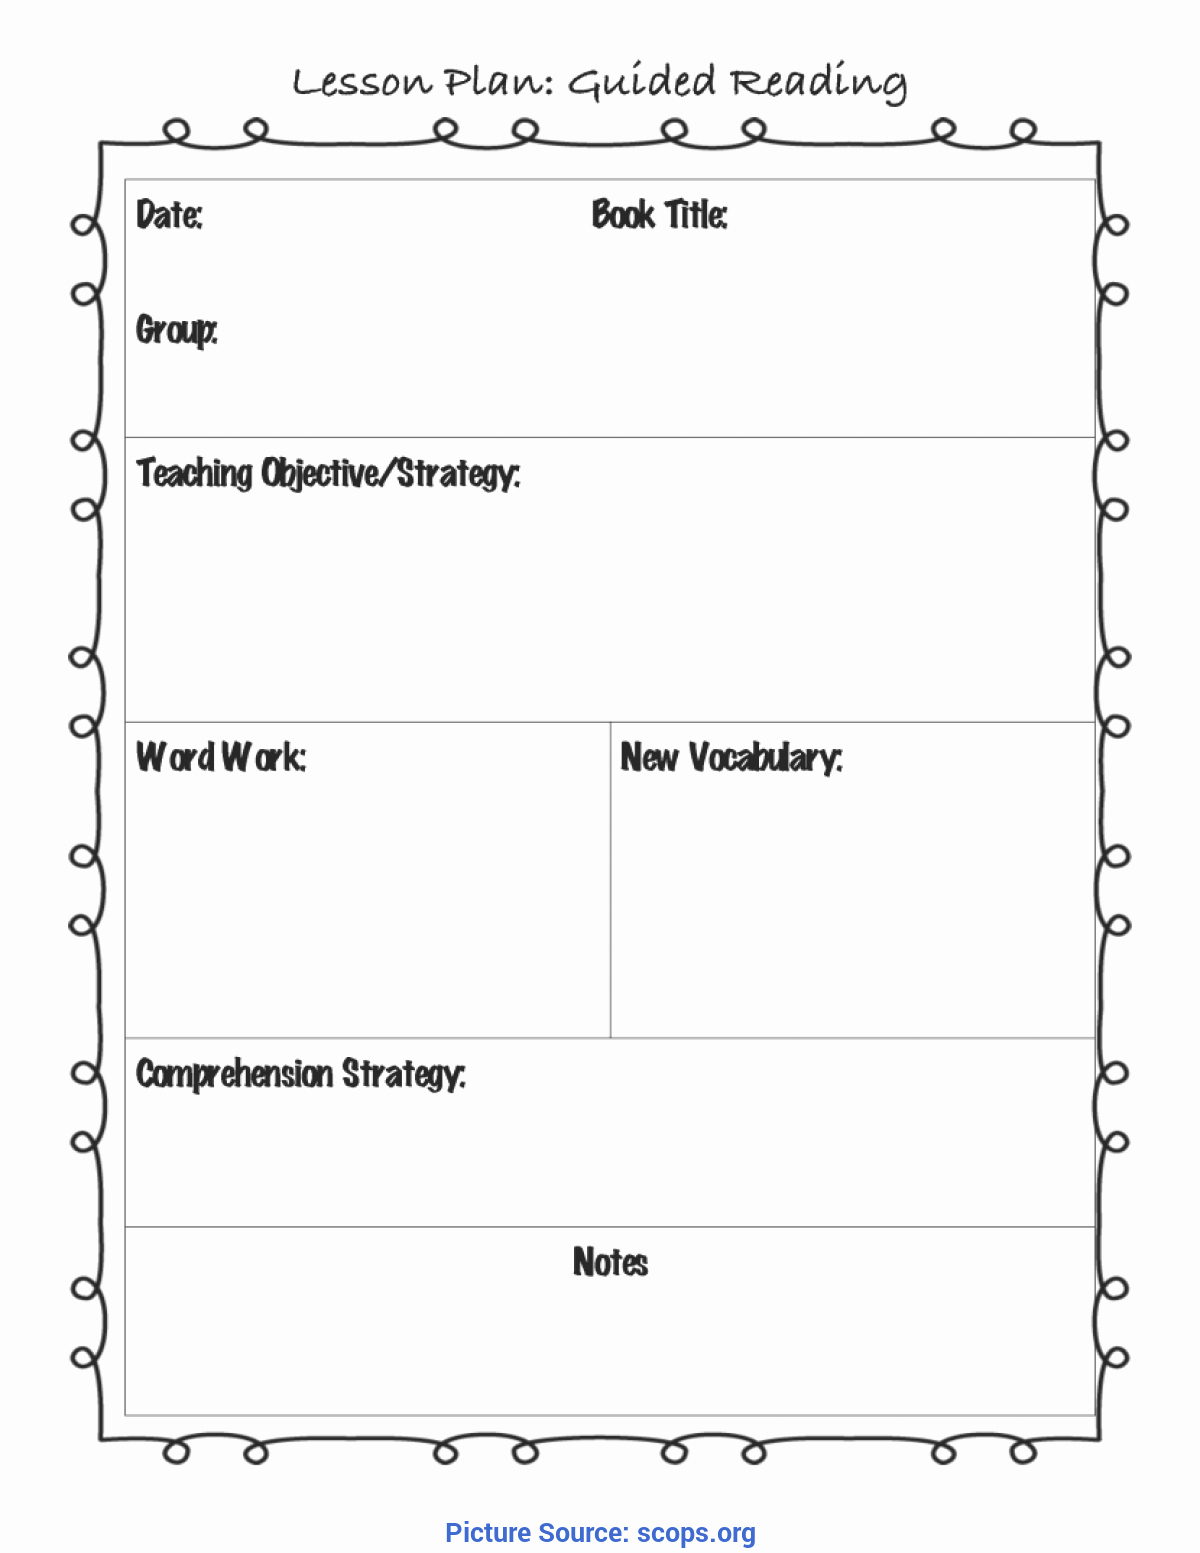 Free Lesson Plan Template Elementary Best Of Valuable Group Art Projects for Elementary Students Silent